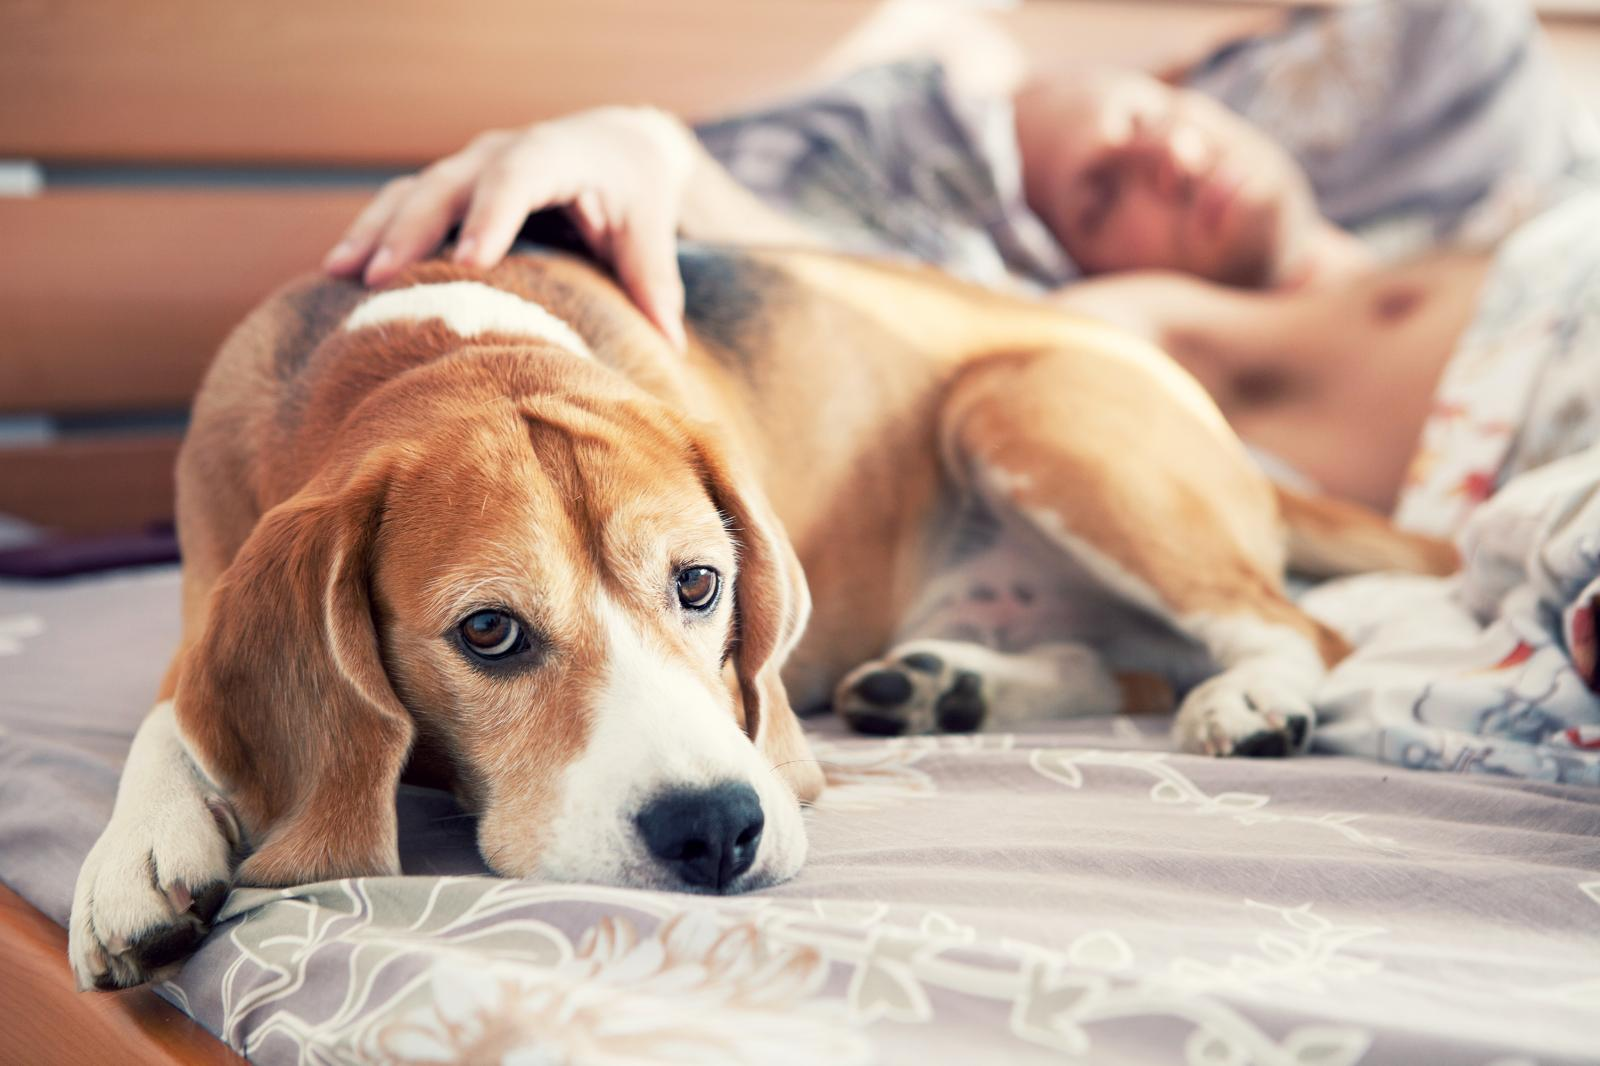 Warning Signs a Dog Is Dying | LoveToKnow